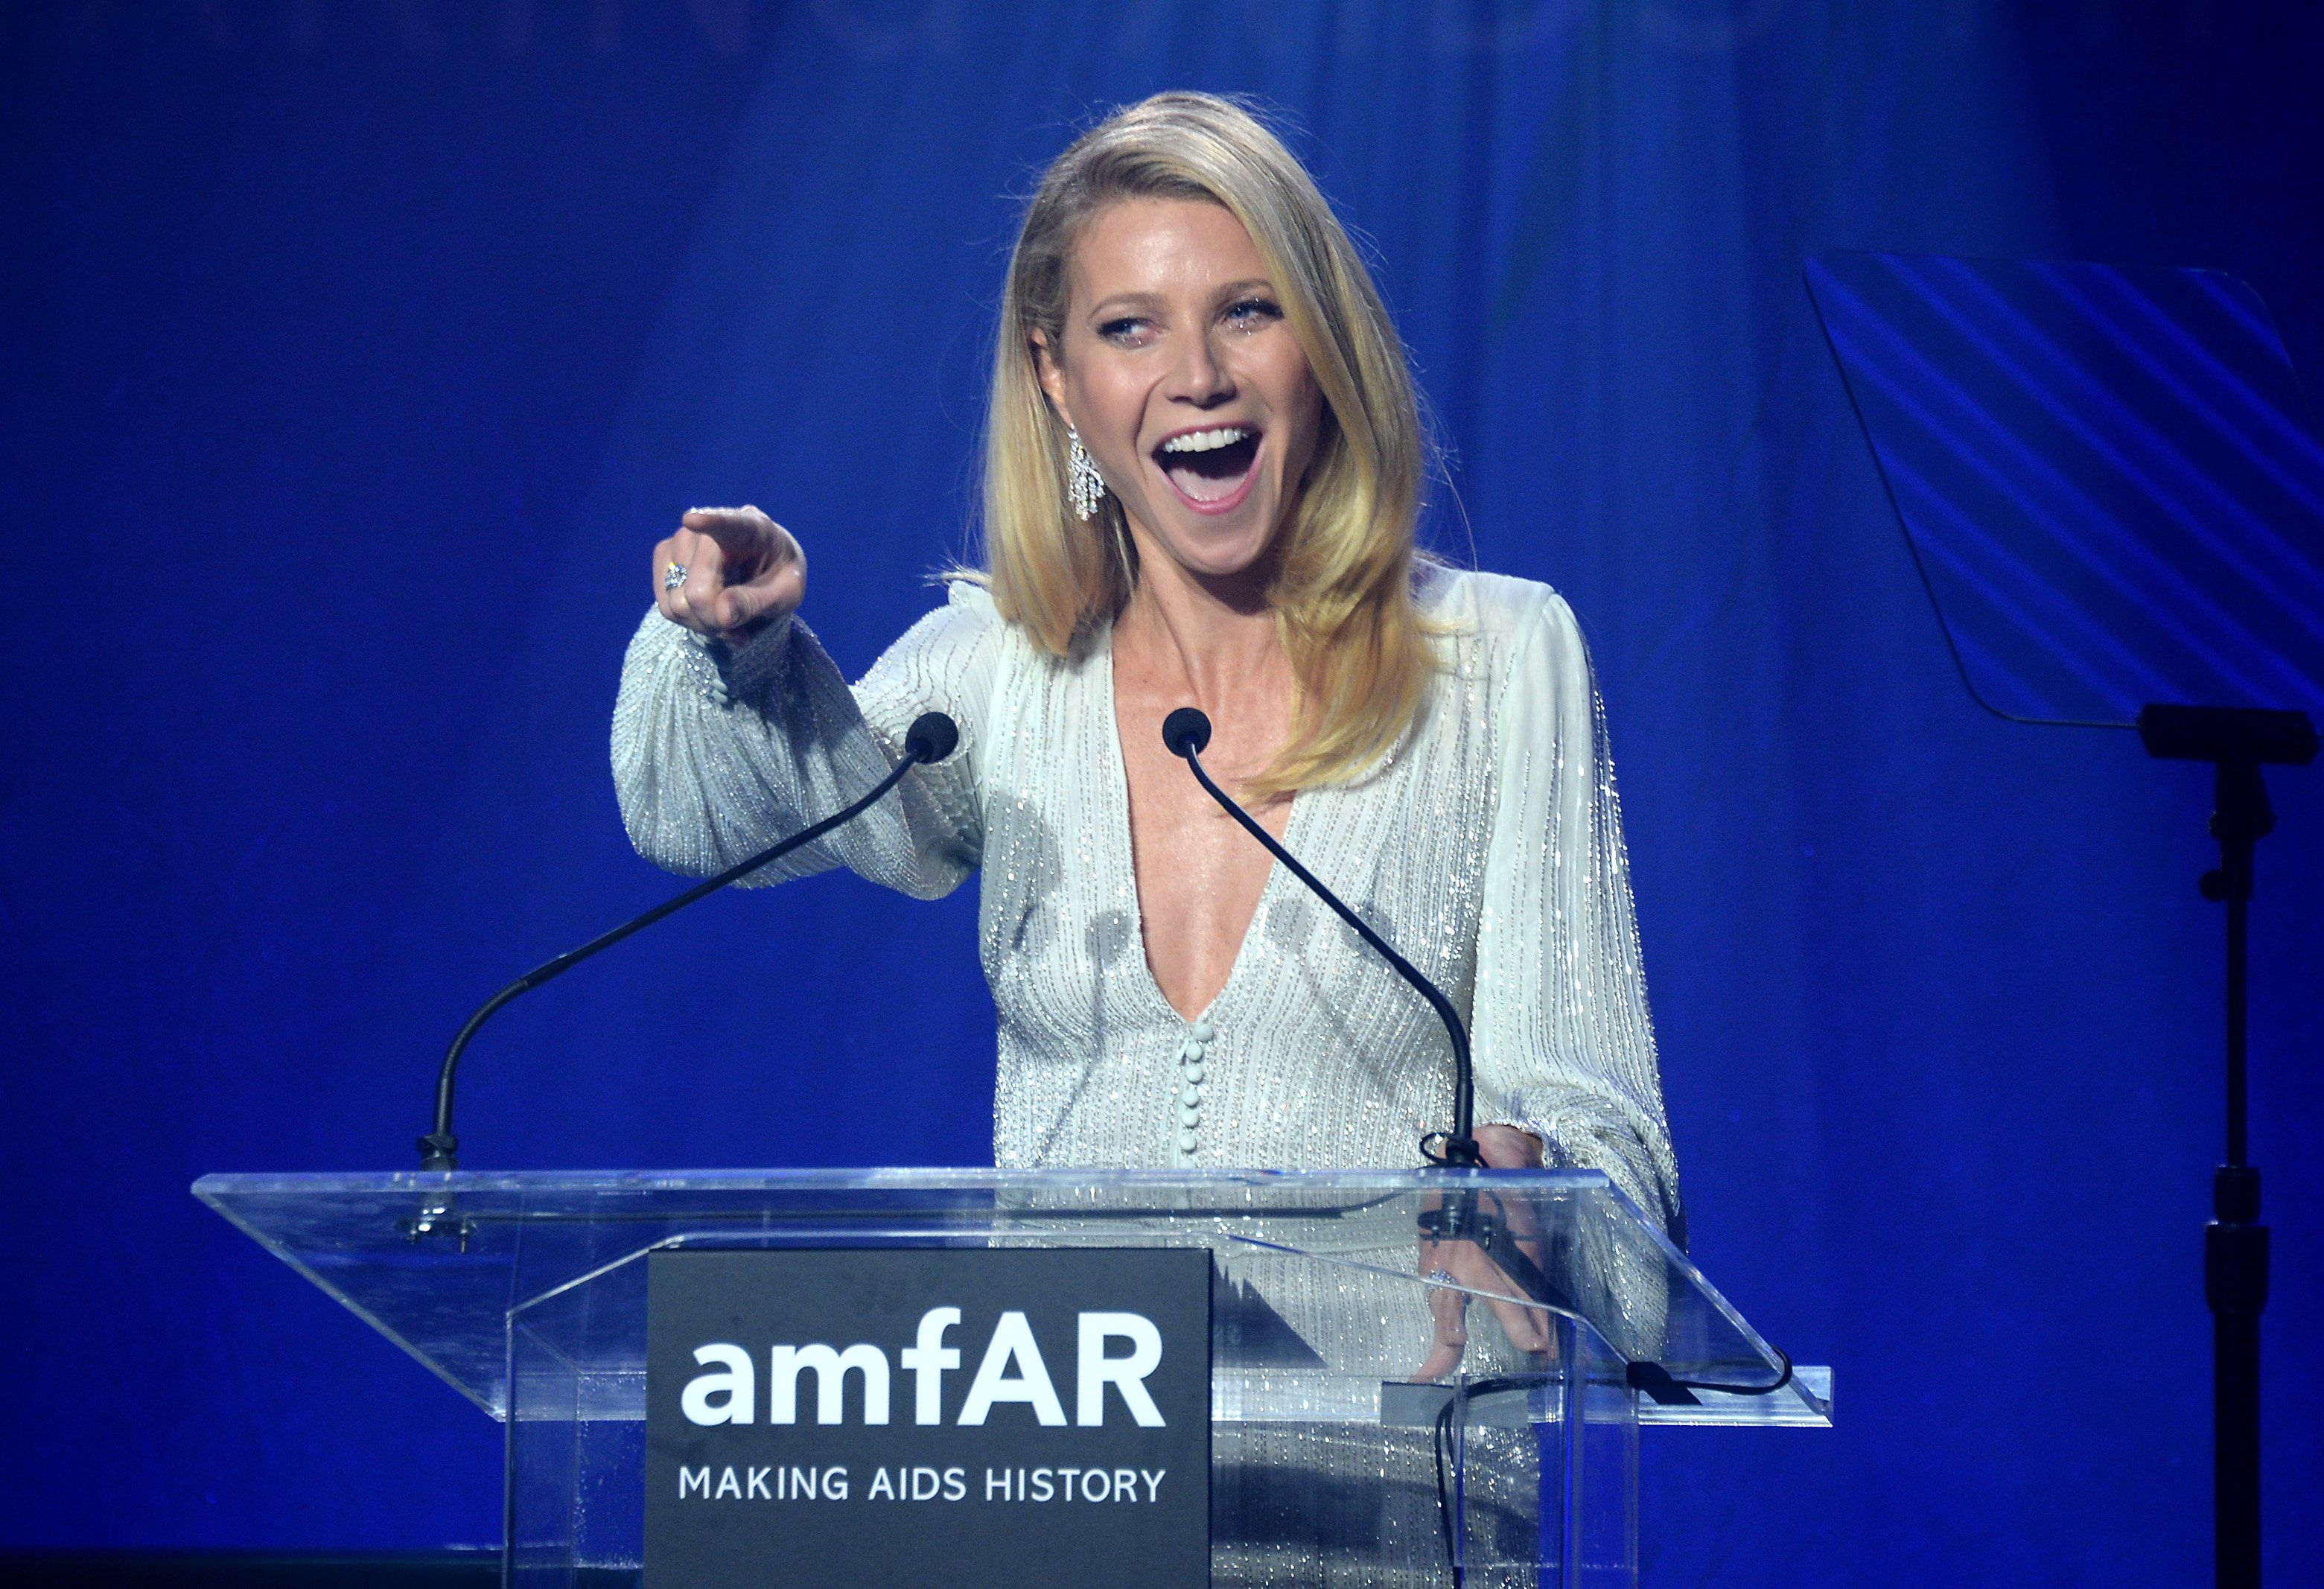 HOLLYWOOD, CA - OCTOBER 29: Host Gwyneth Paltrow speaks on stage at the amfAR Inspiration Gala at Milk Studios on October 29, 2015 in Hollywood, California.  (Photo by Kevin Tachman/Getty Images for amfAR)